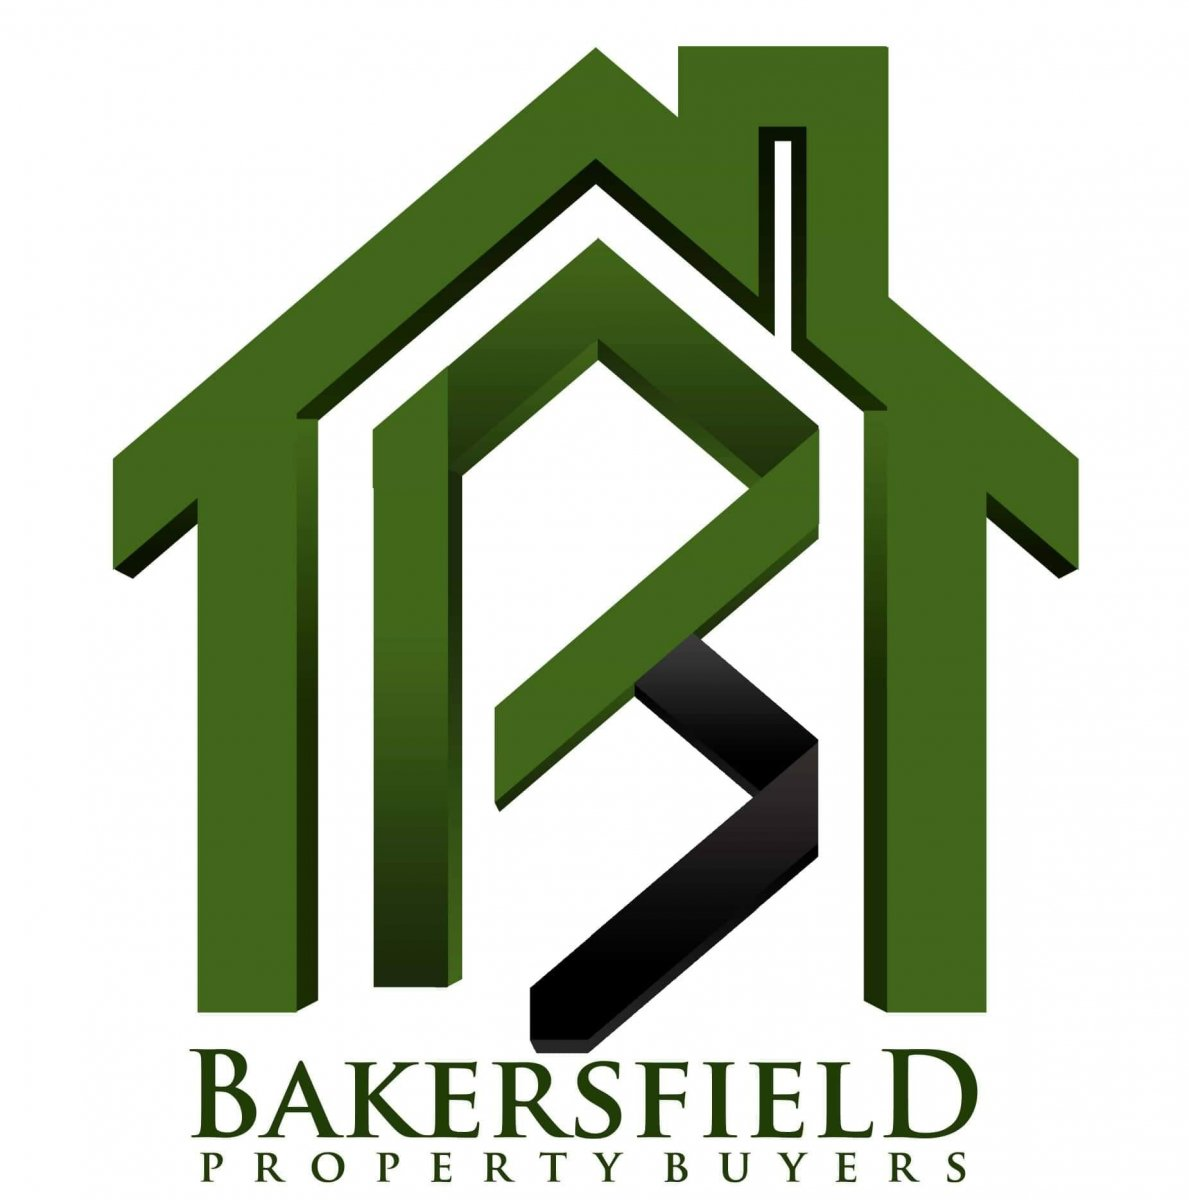 Bakersfield Property Buyers  logo